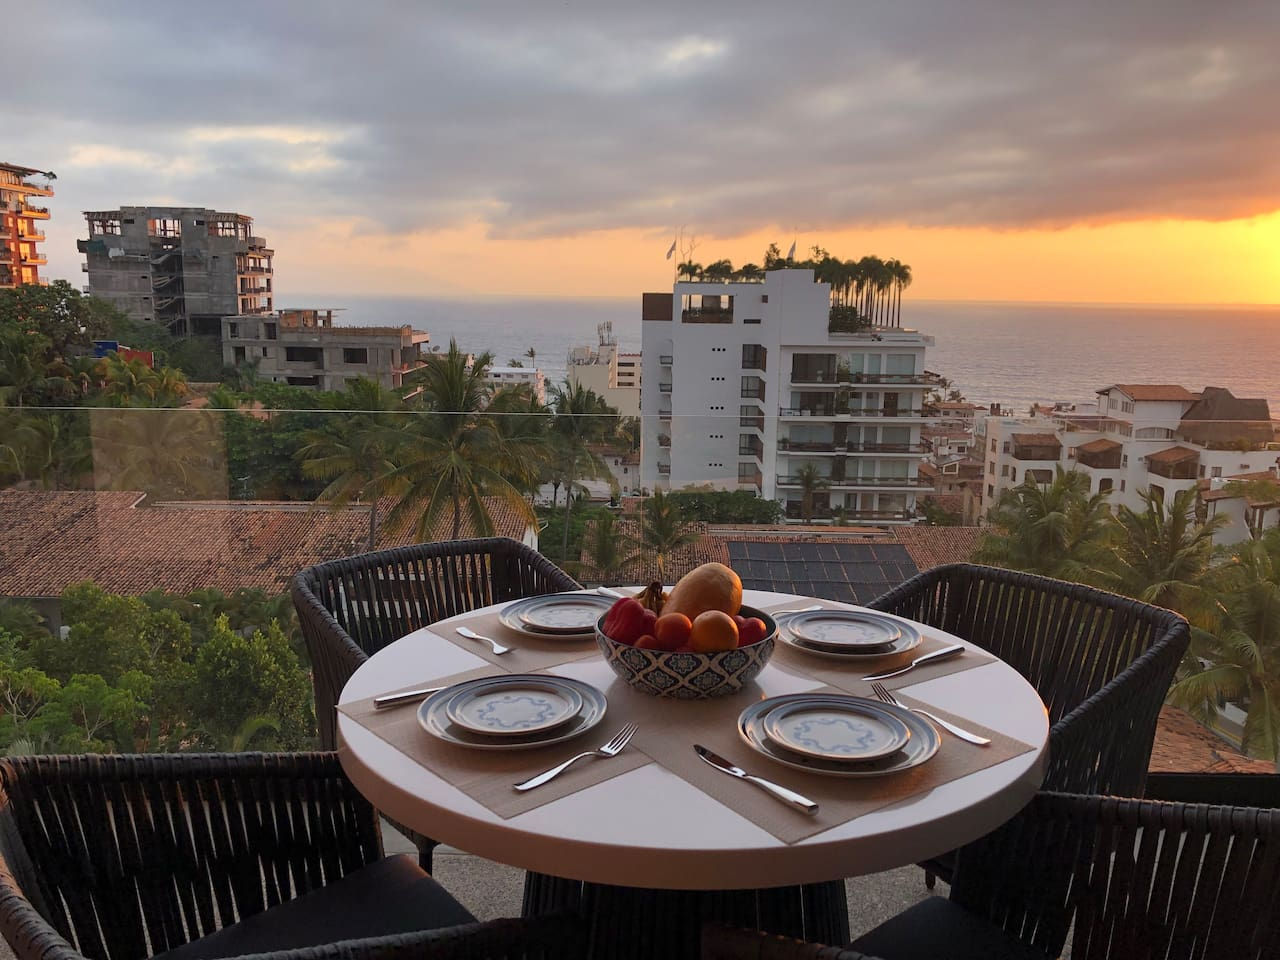 Welcome to PeoVallarta! Sit and relax on our spacious patio and watch the sunset with ocean views on Banderas Bay and the Zona Romantica in Puerto Vallarta.